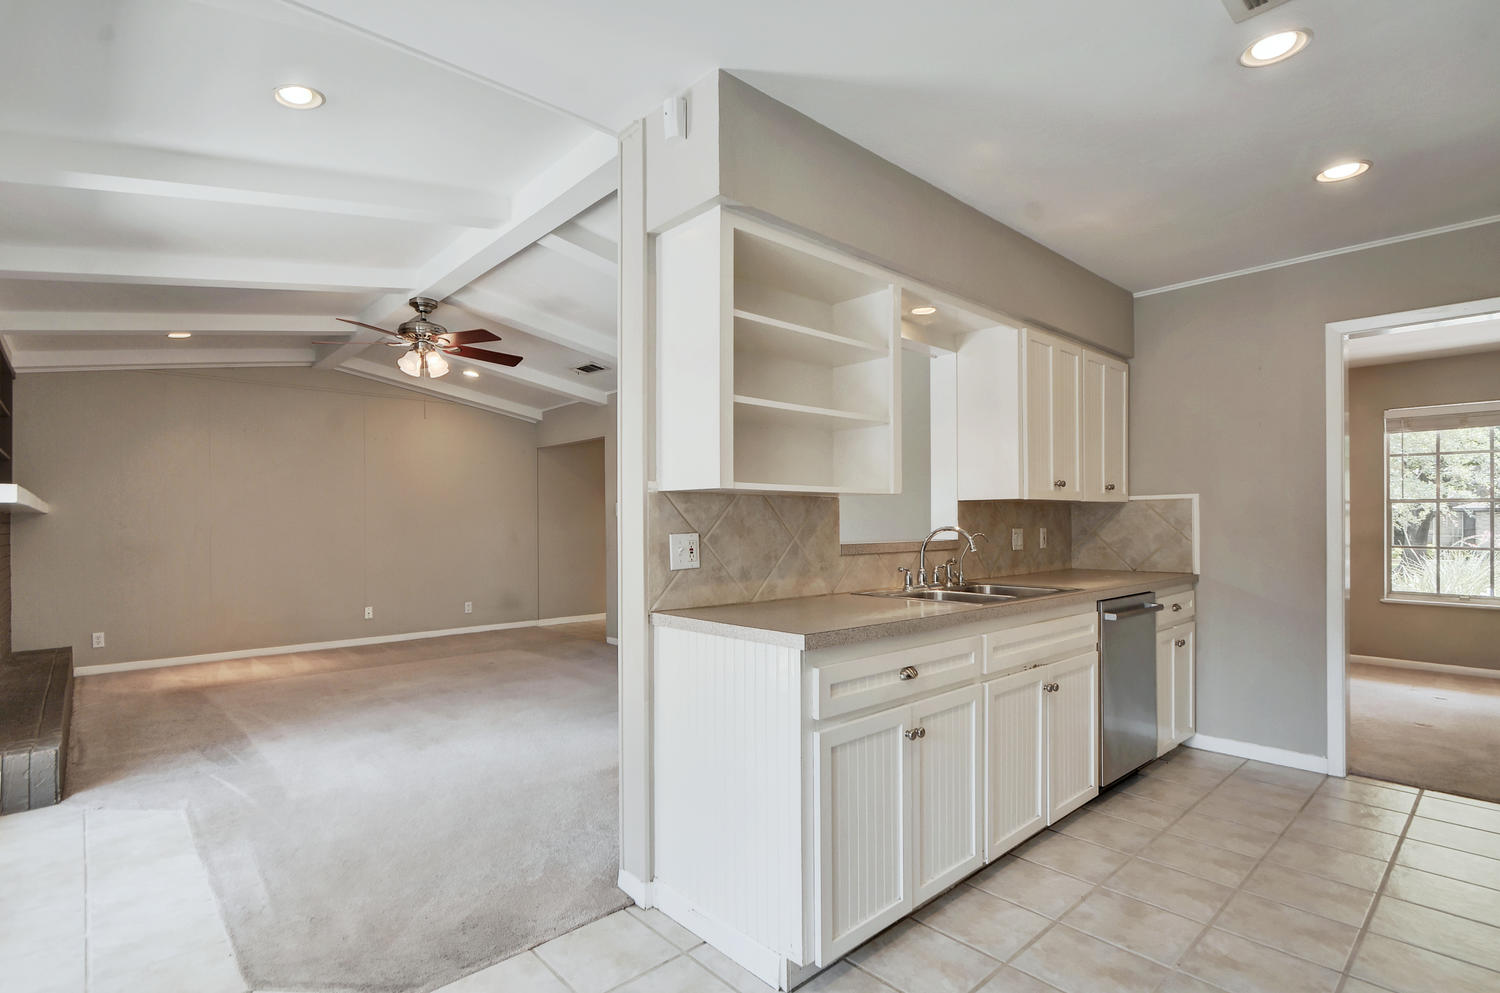 1802 Westmoor Dr-large-021-29-Kitchen and Breakfast 004-1500x994-72dpi.jpg